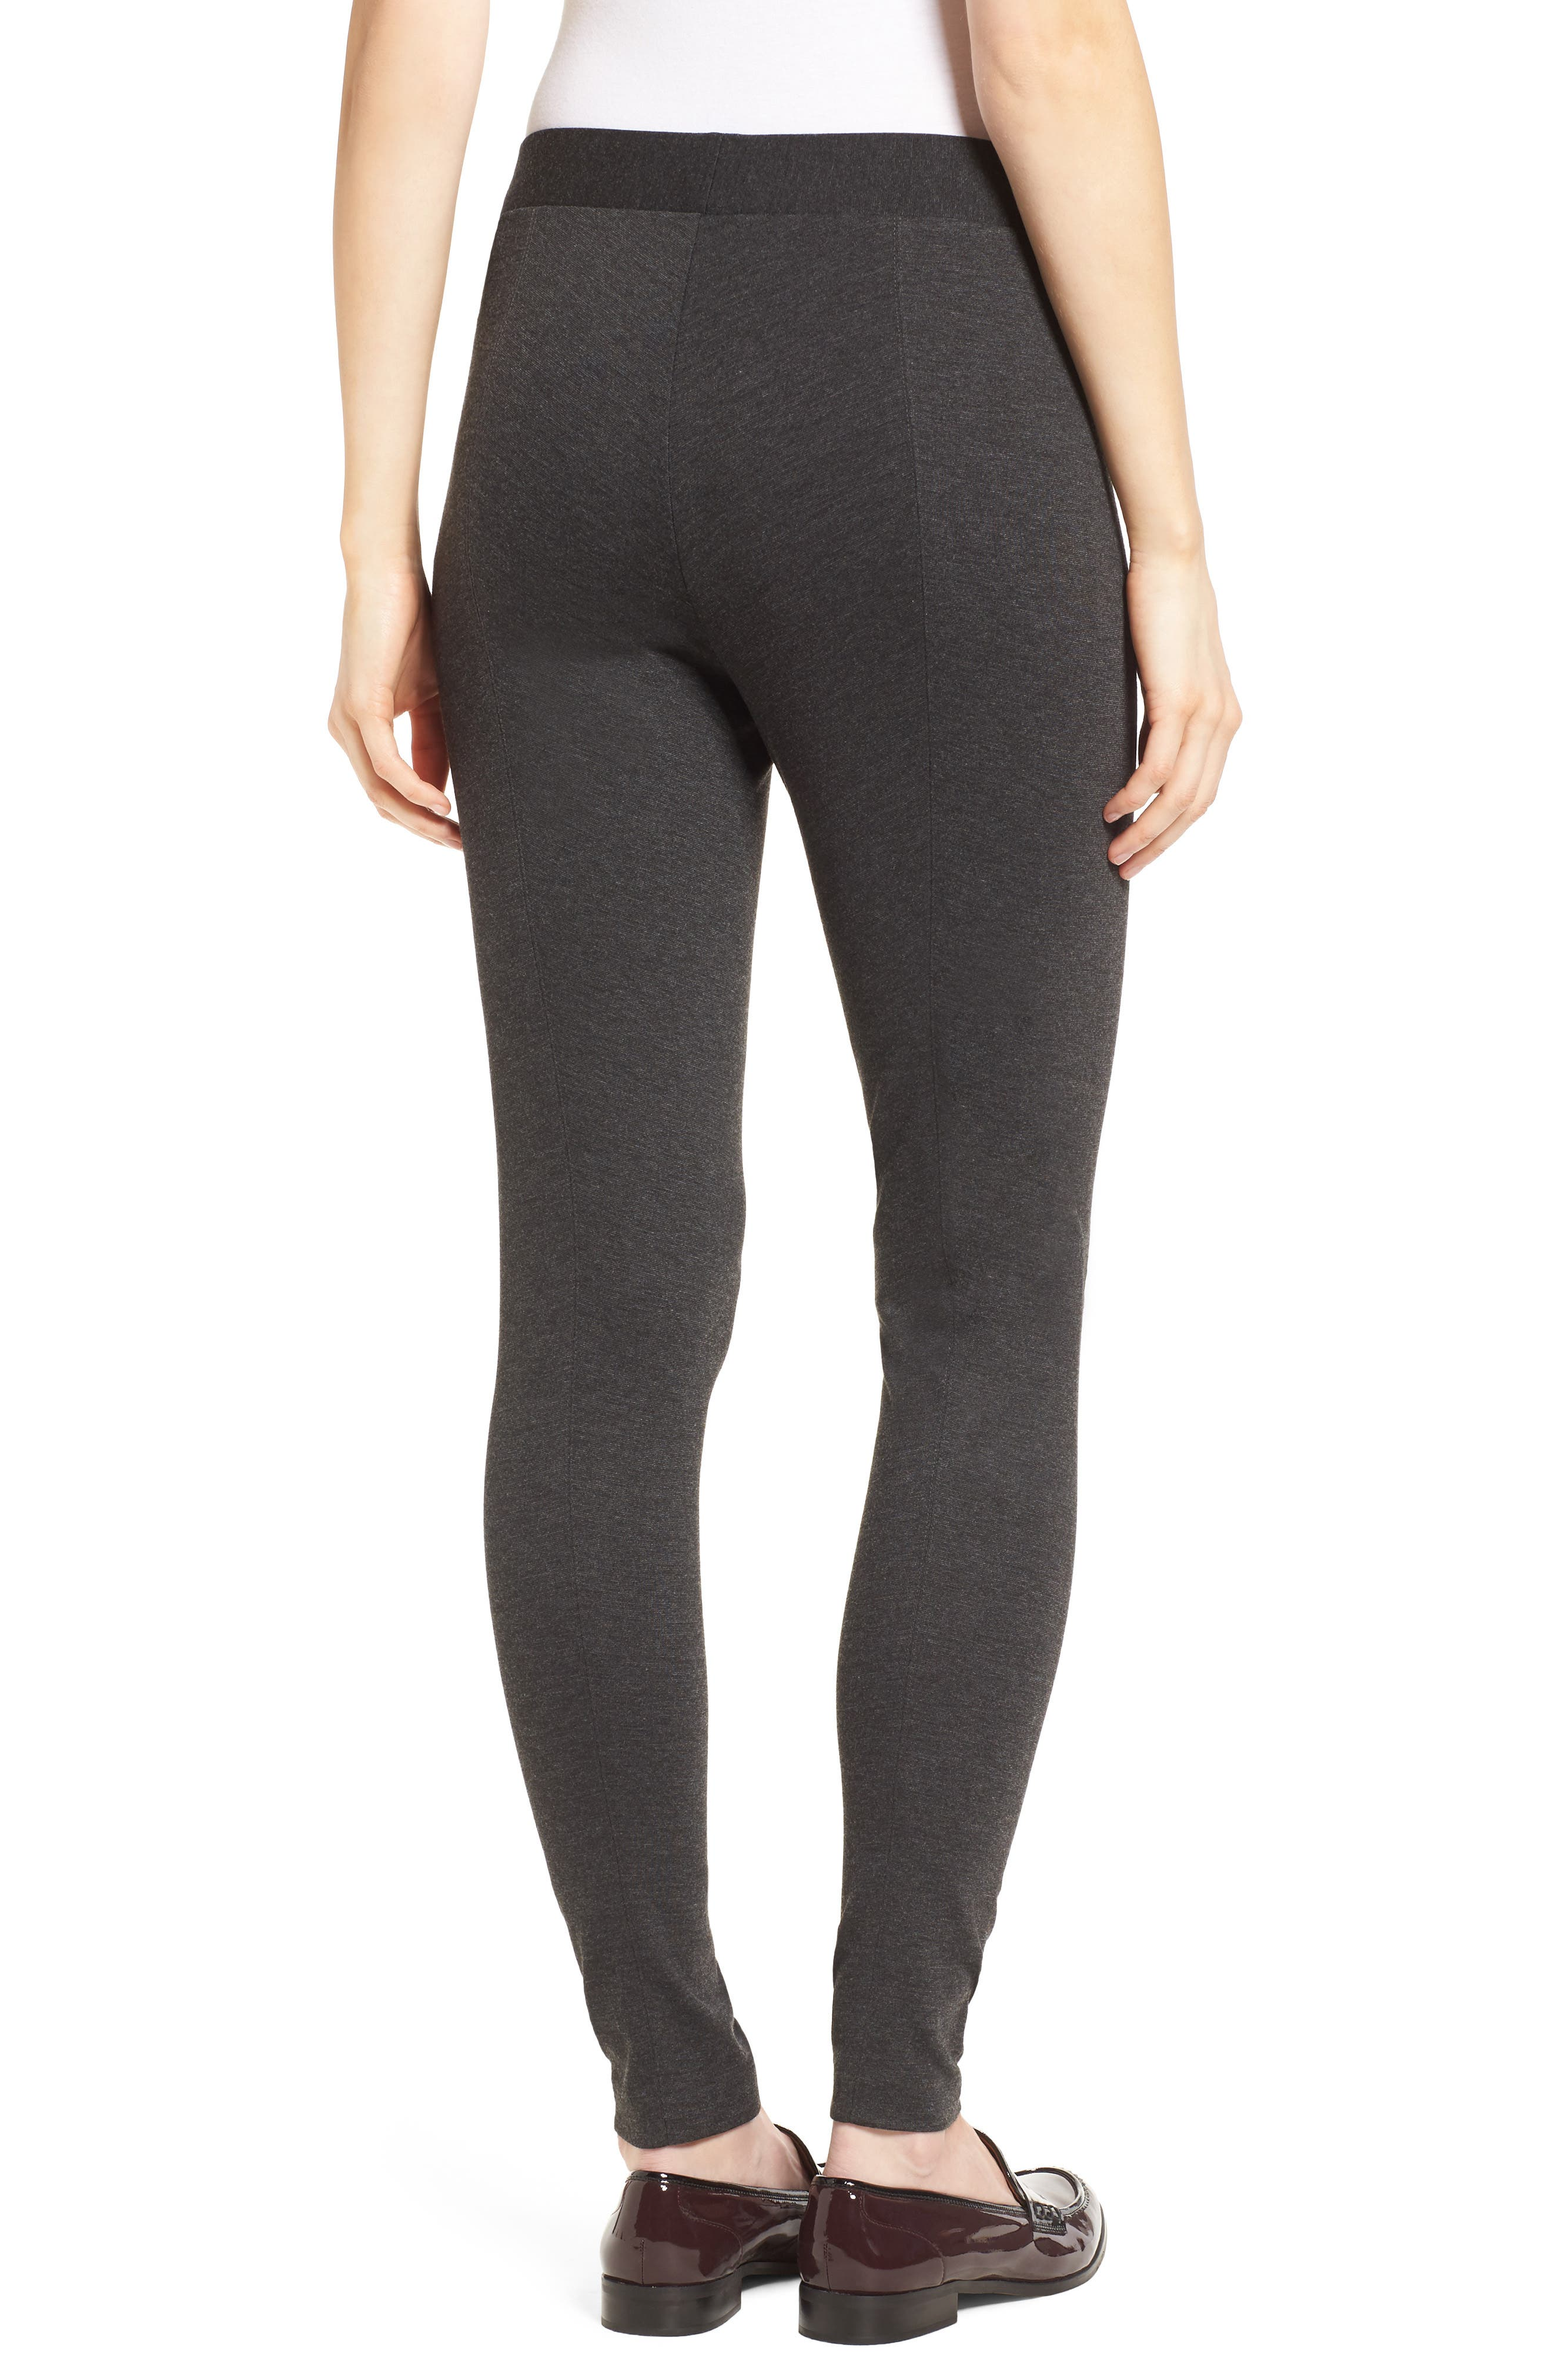 VINCE CAMUTO, Two by Vince Camuto Seamed Back Leggings, Alternate thumbnail 2, color, DARK HEATHER GREY